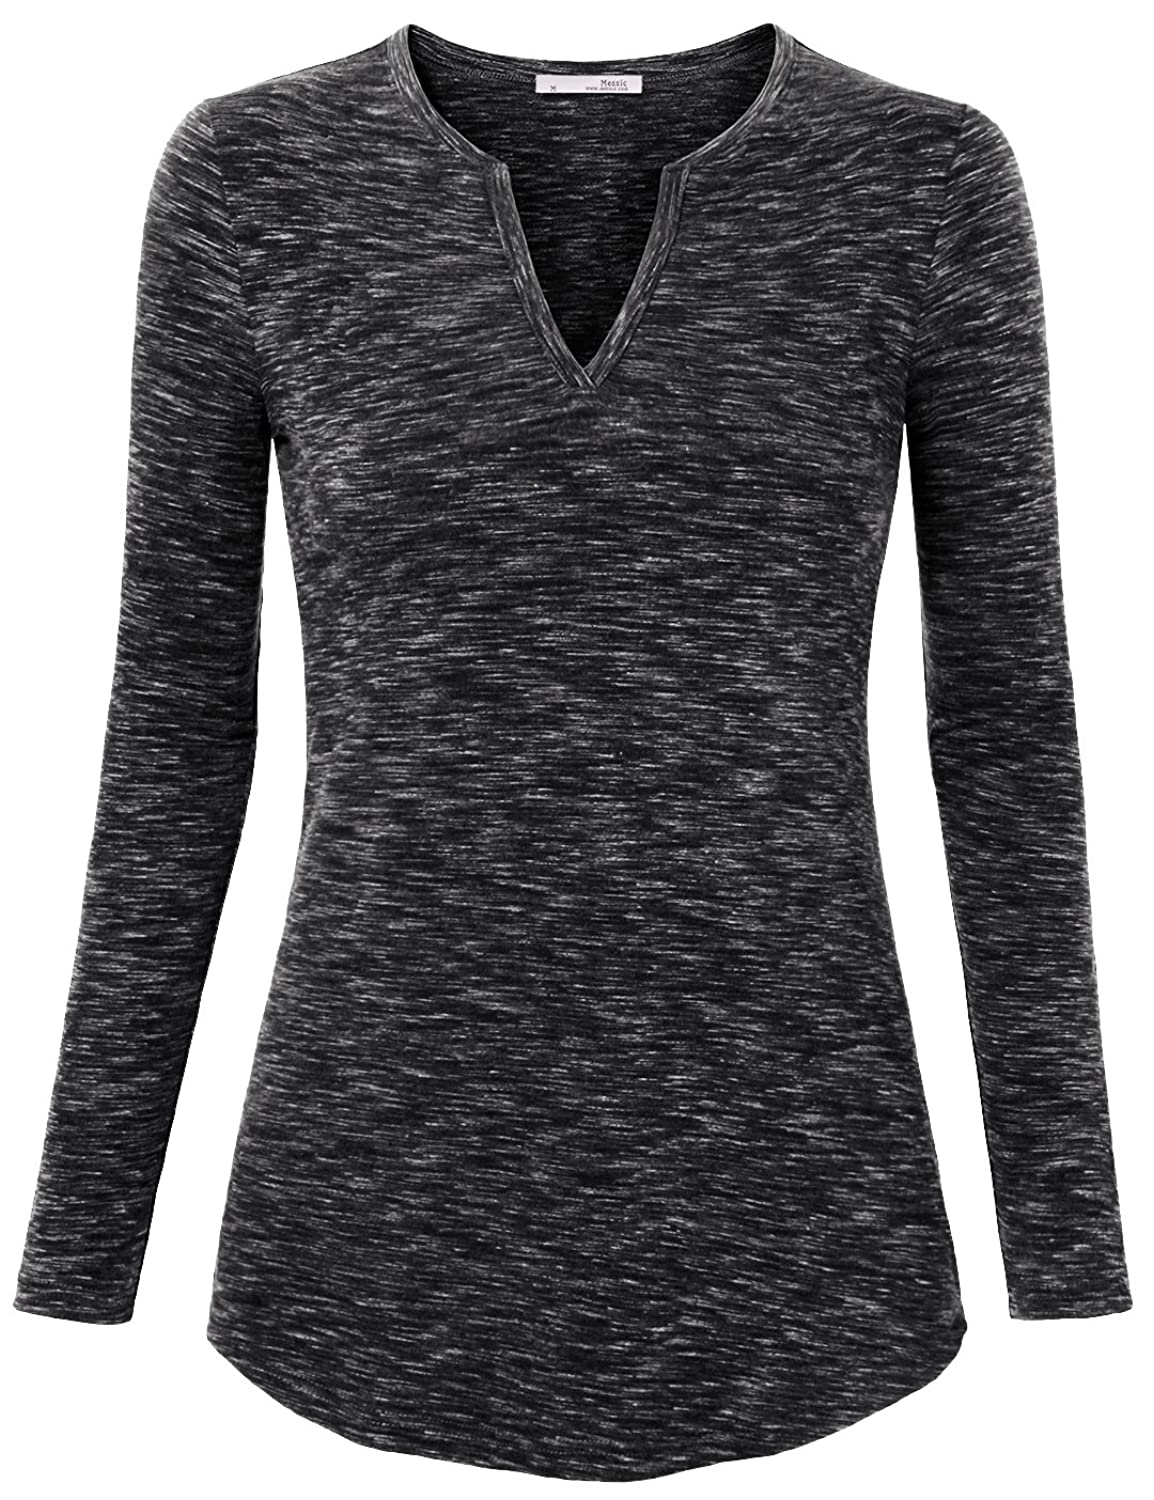 Messic Women's Basic Long Sleeve Notch V Neck Casual Knit Tee ...